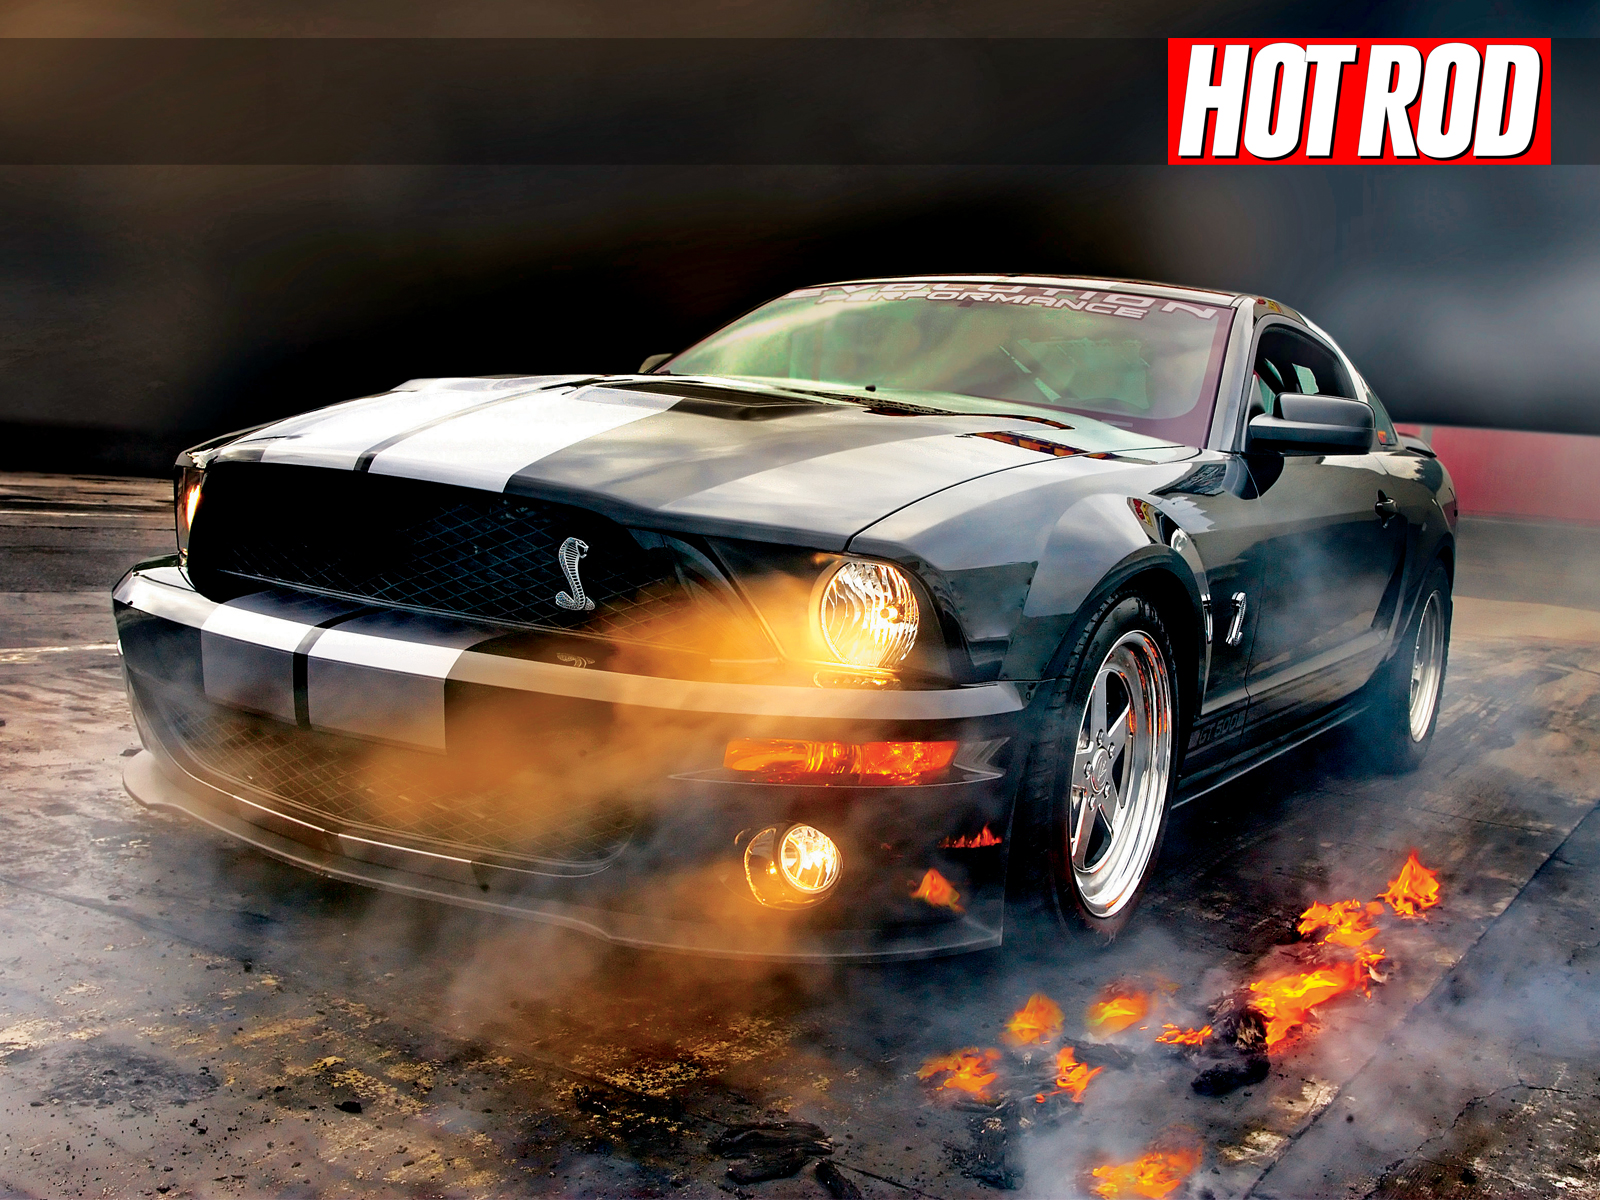 hd muscle car wallpapers high definition abstract hd exotic car 1600x1200